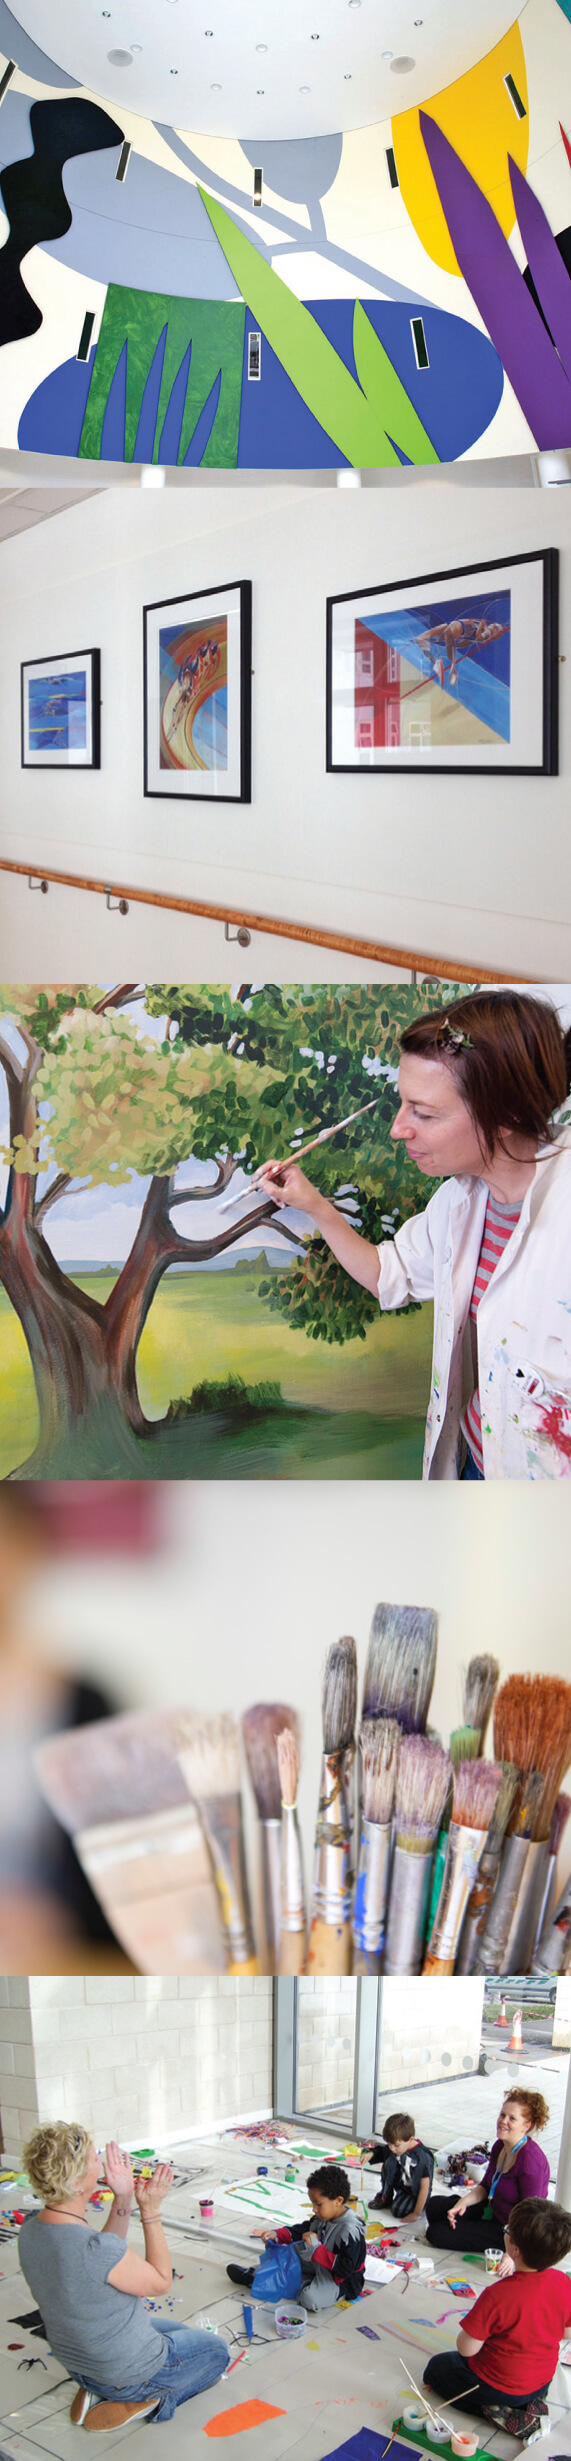 UHCW Healing Arts Coventry